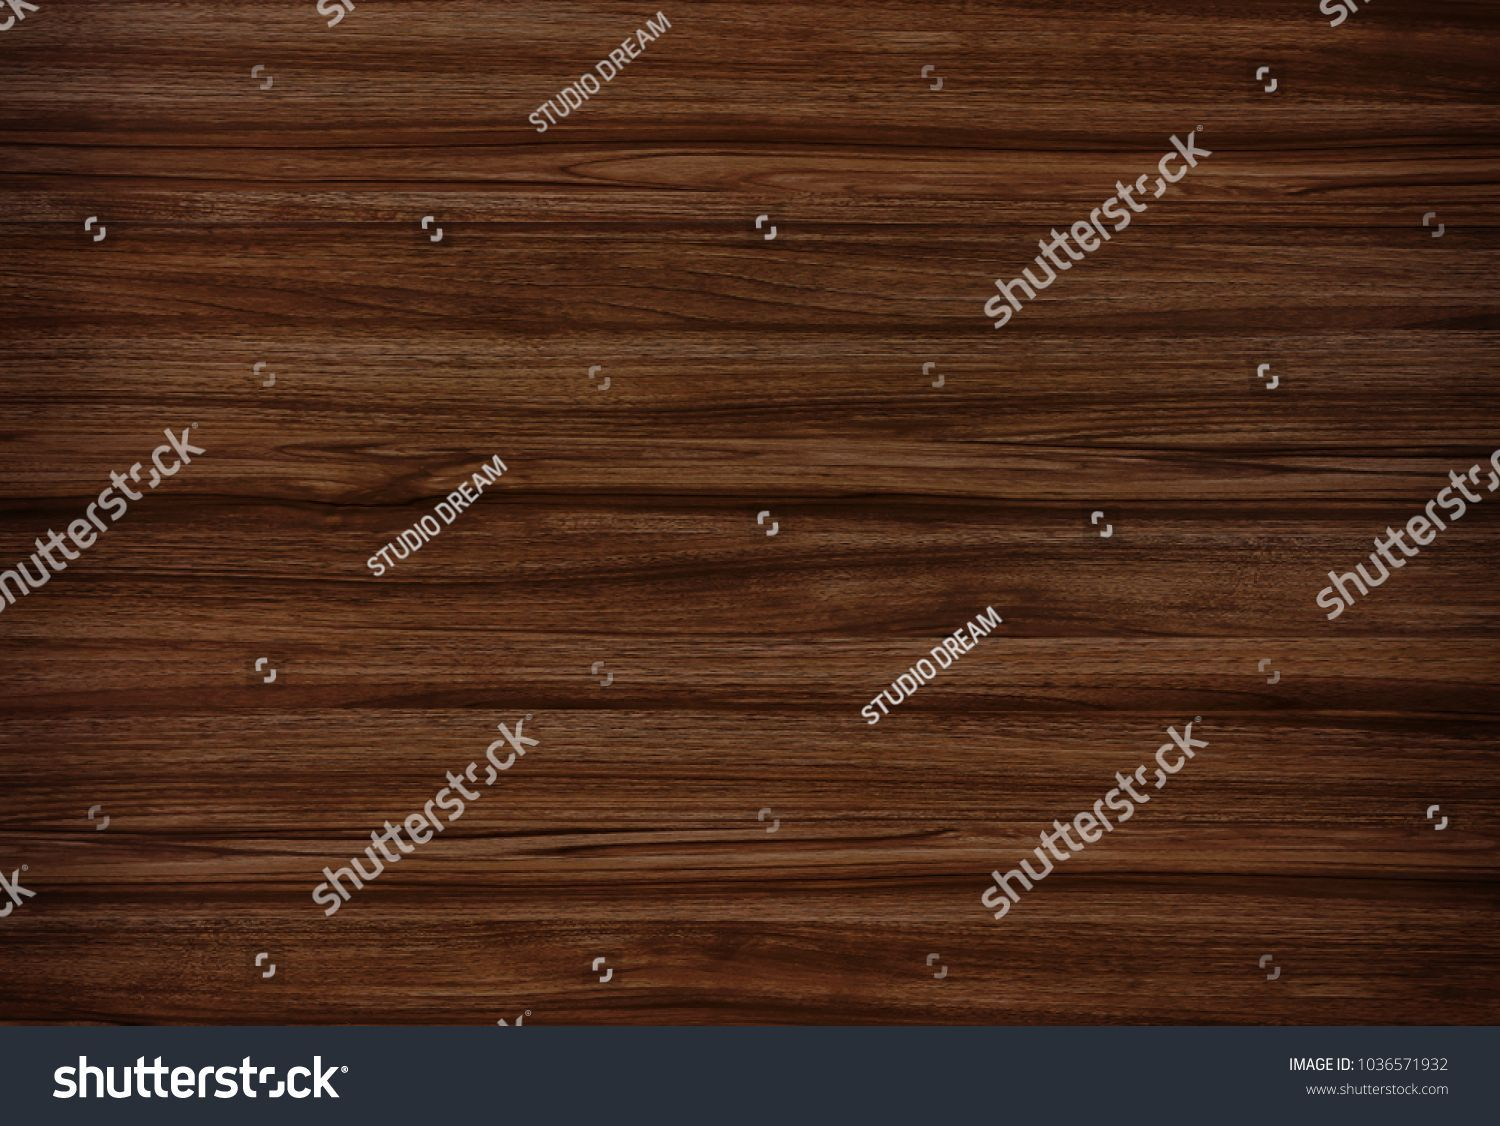 wood texture background, brown wood texture abstract background, walnut wood. background#texture#wood#walnut #woodtexturebackground wood texture background, brown wood texture abstract background, walnut wood. background#texture#wood#walnut #woodtexturebackground